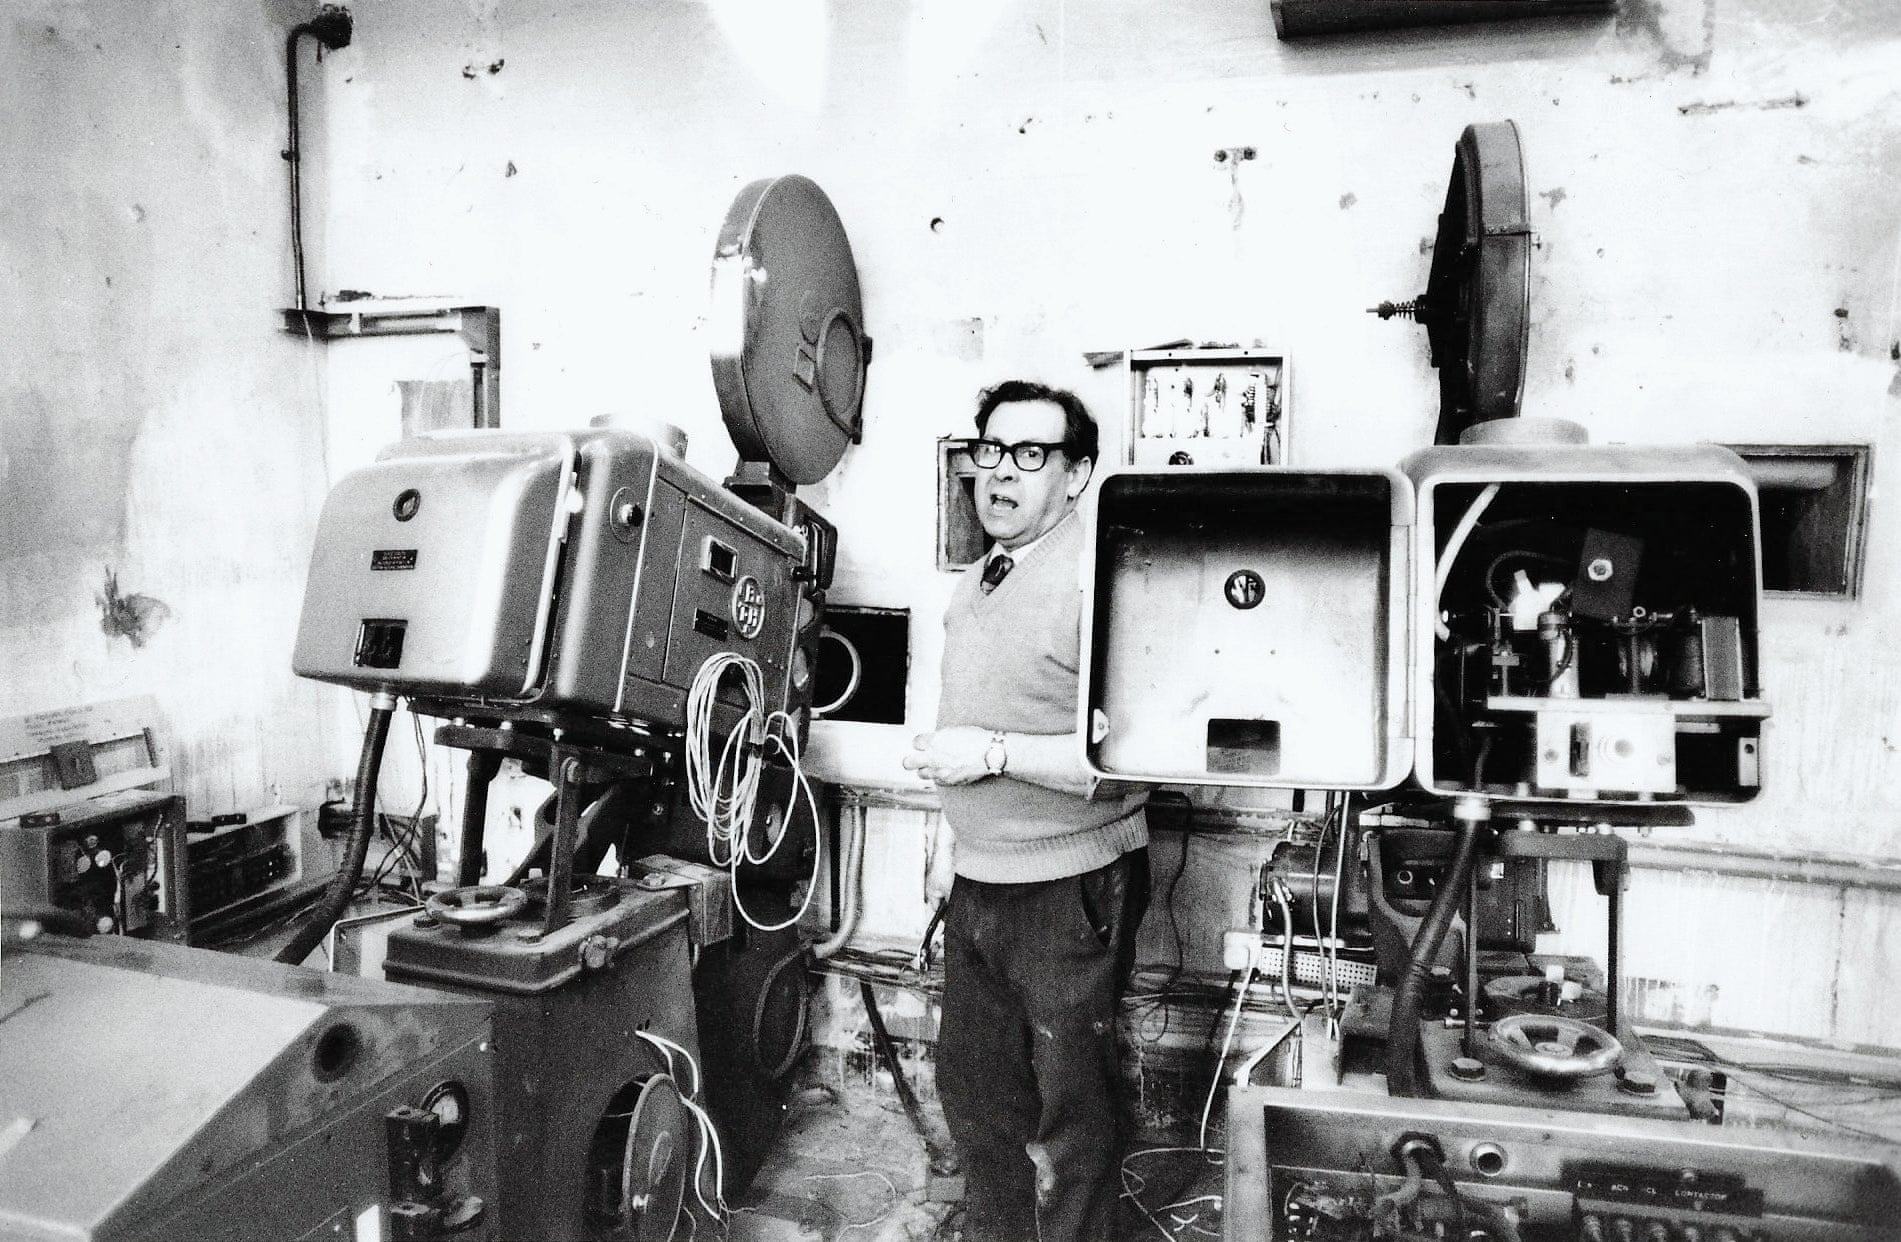 Billy Bell, technician installing projection equipment at Scala King's Cross, 1981 Photograph- David Babsky